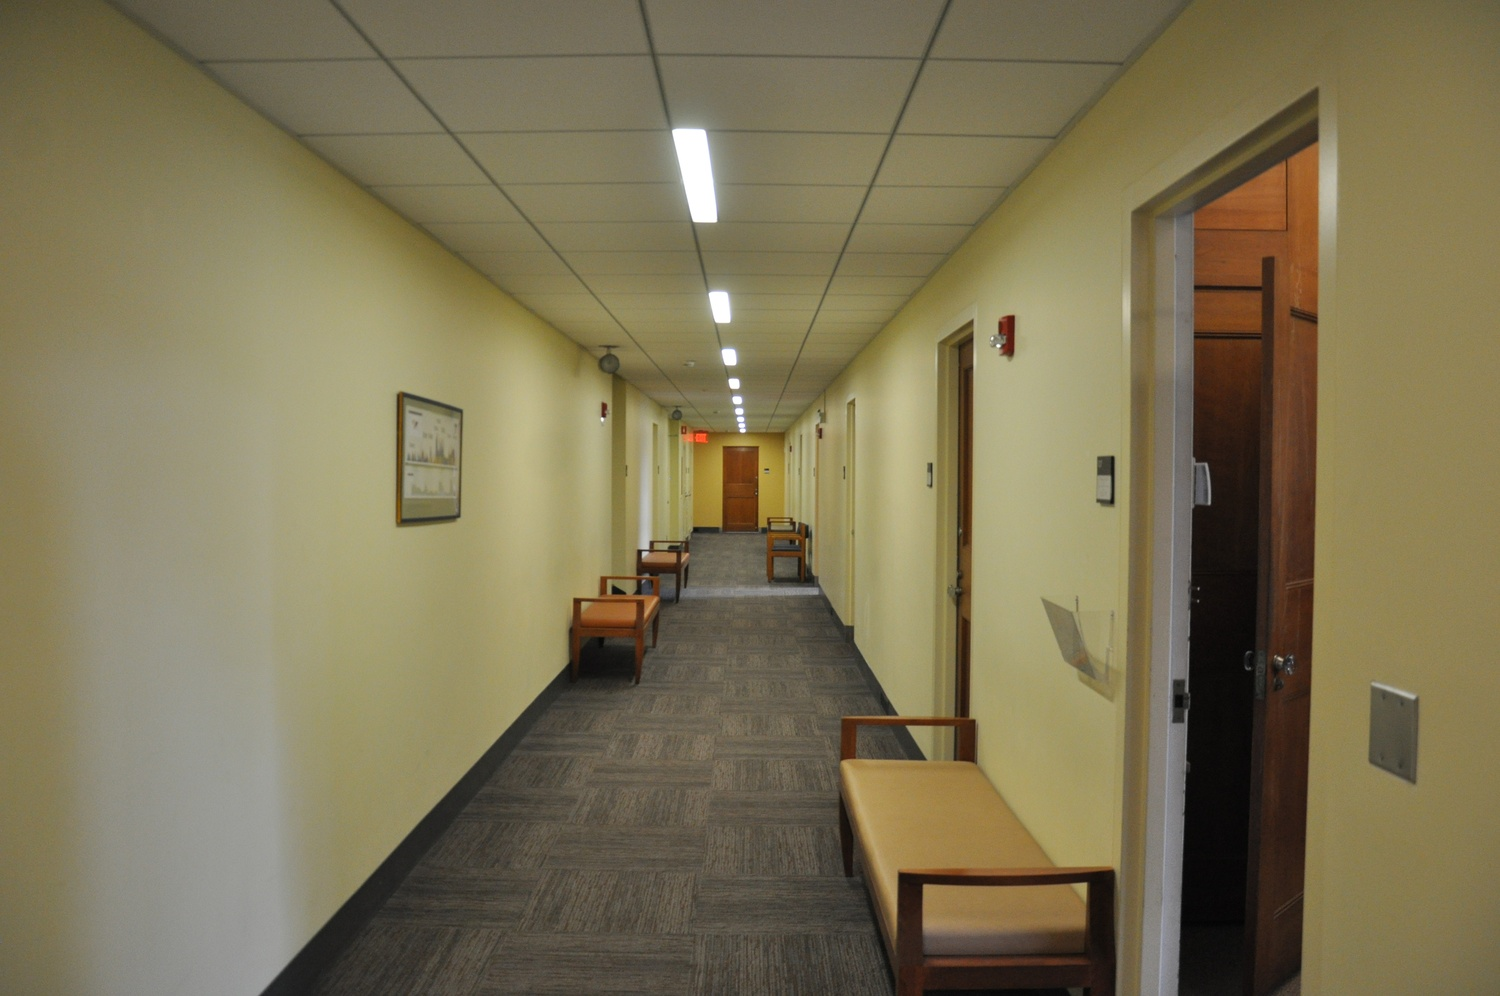 A hallway in the Littauer Center, home to the Harvard's Economics Department.